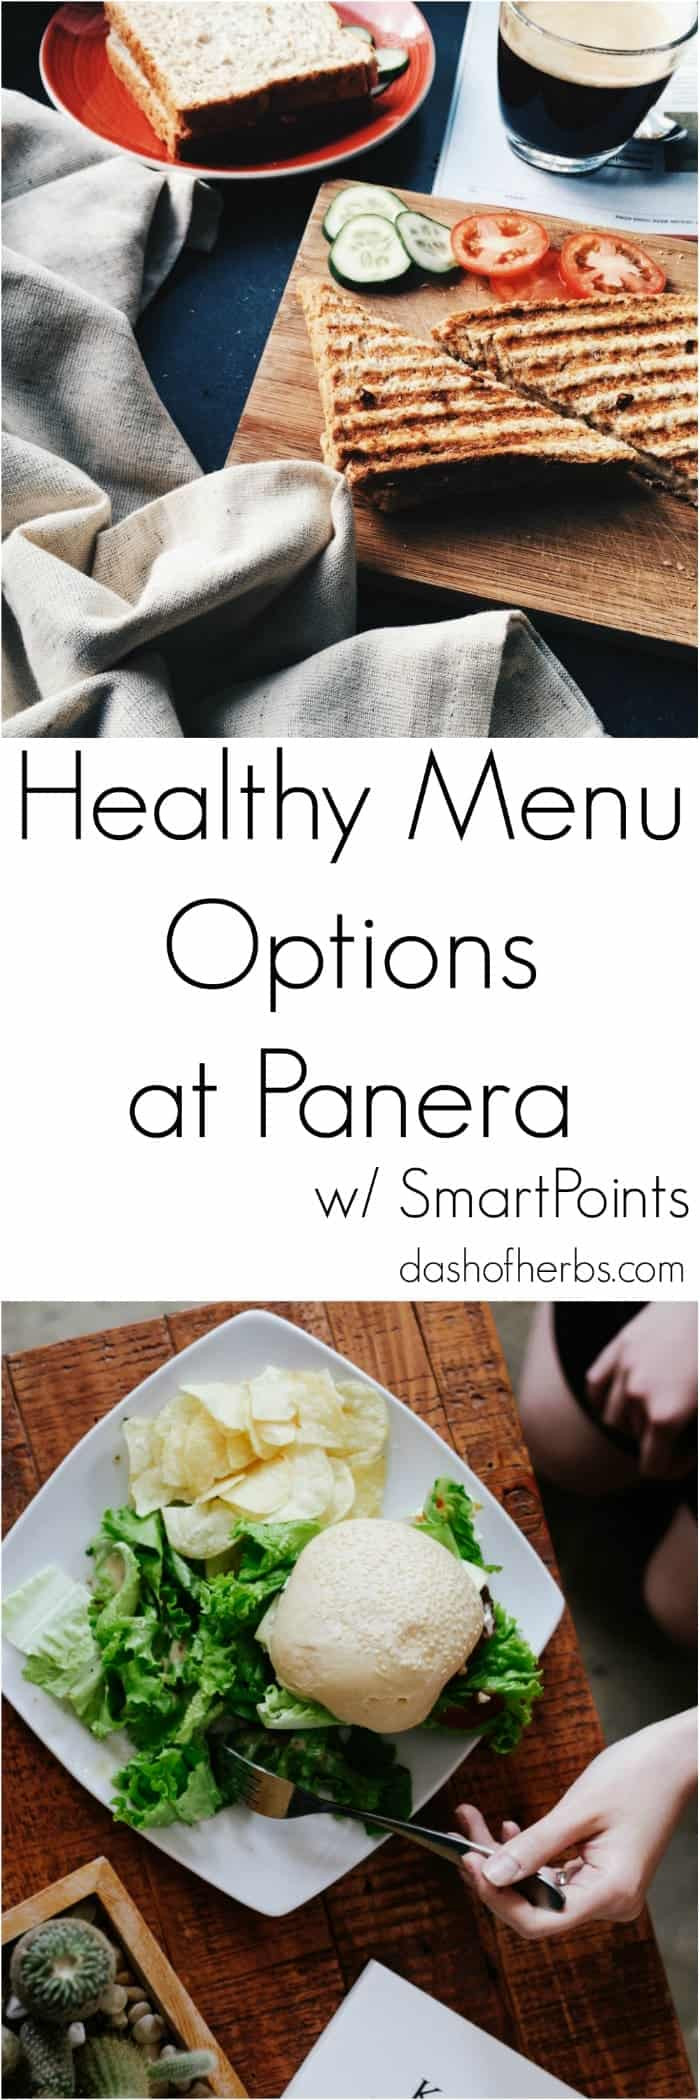 Healthy Options at Panera Bread 20 Best Ideas Healthy Menu Options at Panera Bread Dash Of Herbs